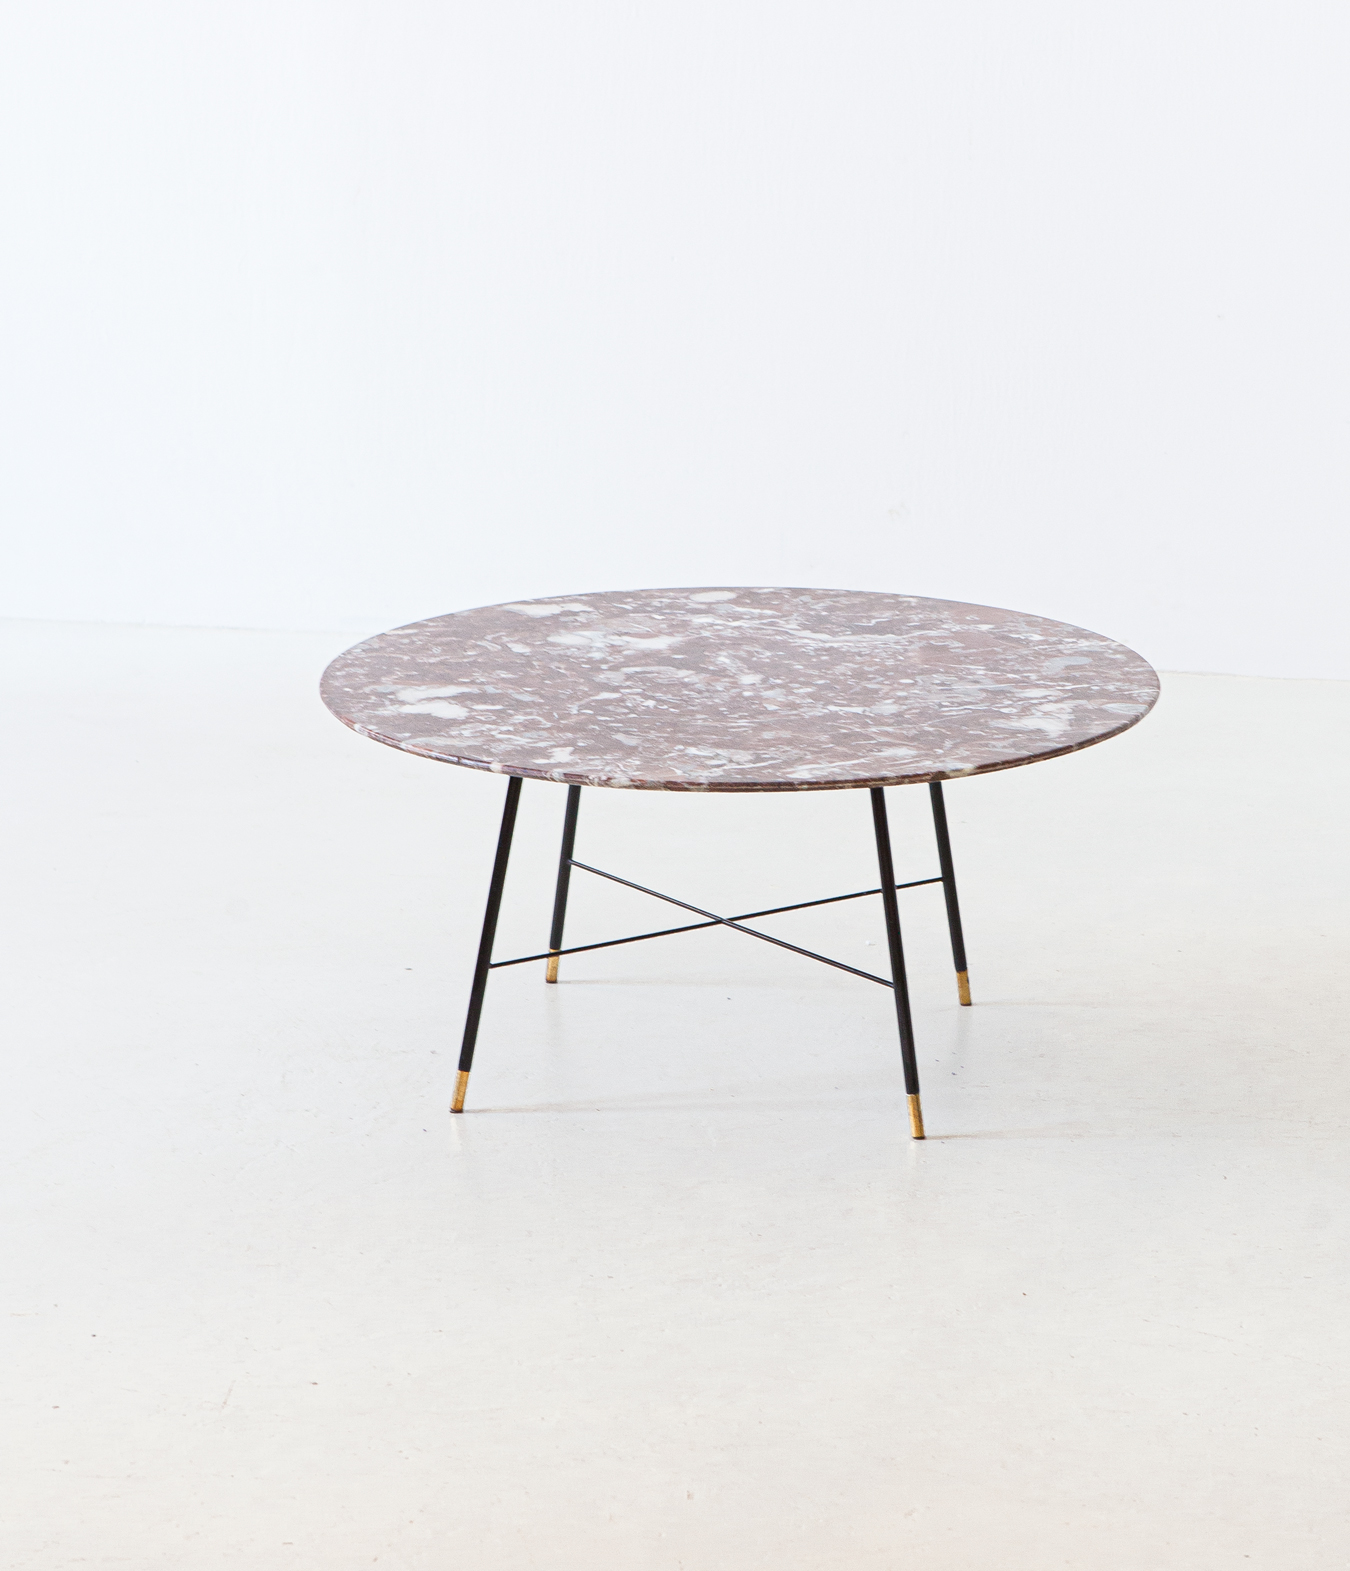 1950s-italian-marble-top-round-low-table-2-t85